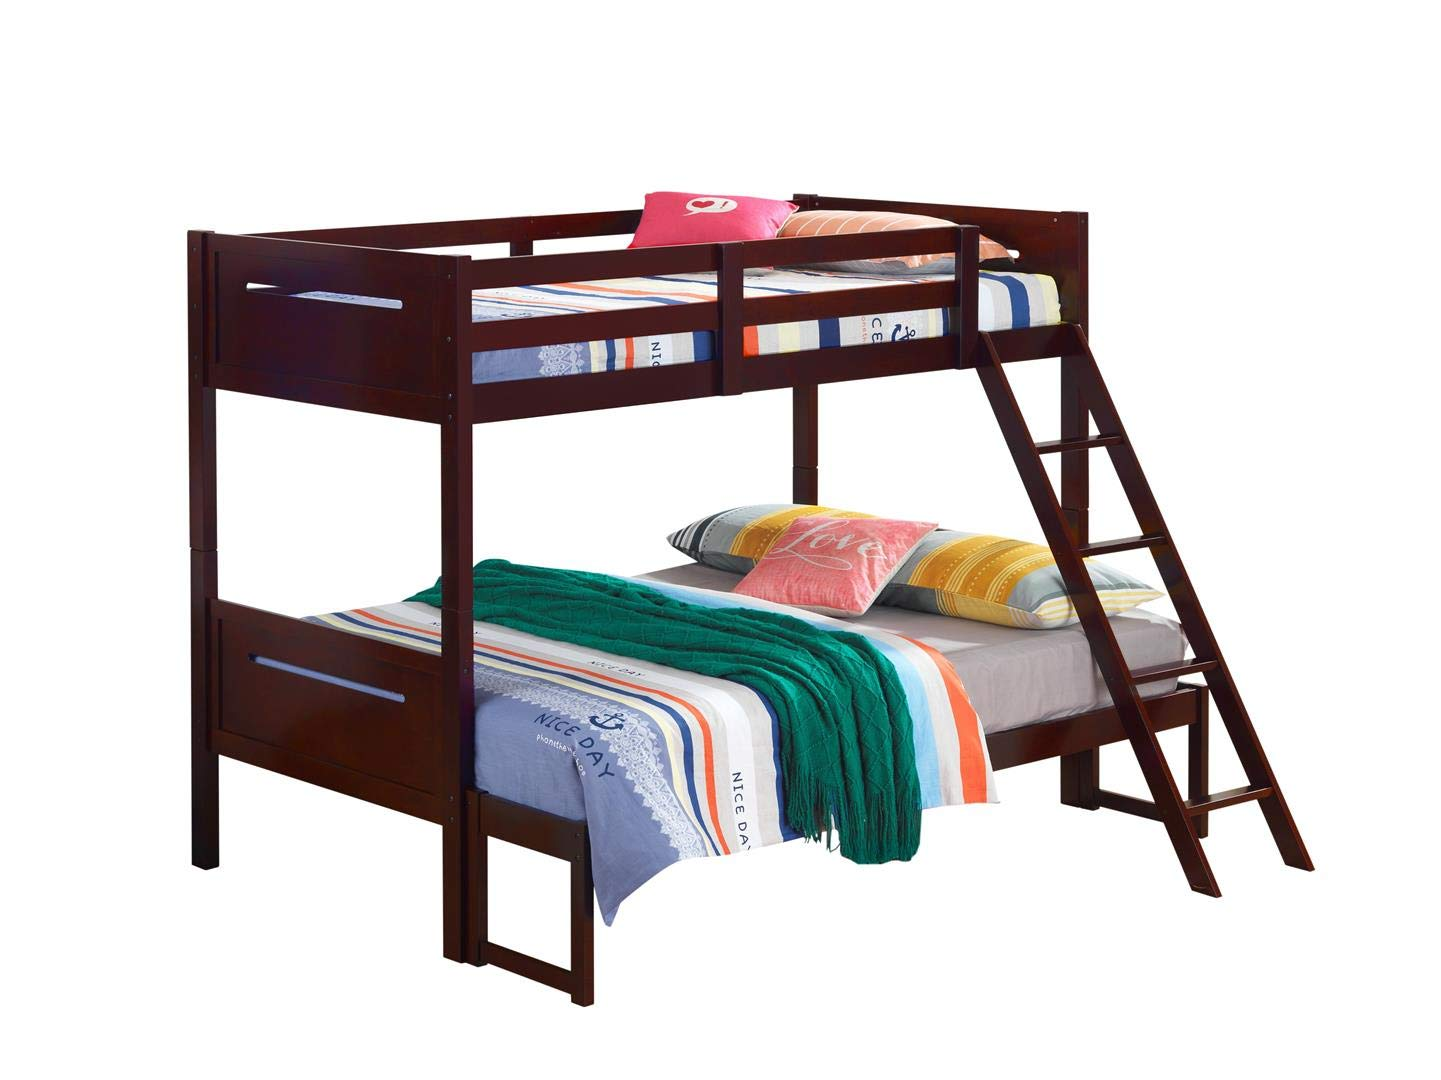 Image result for twin bunk bed black